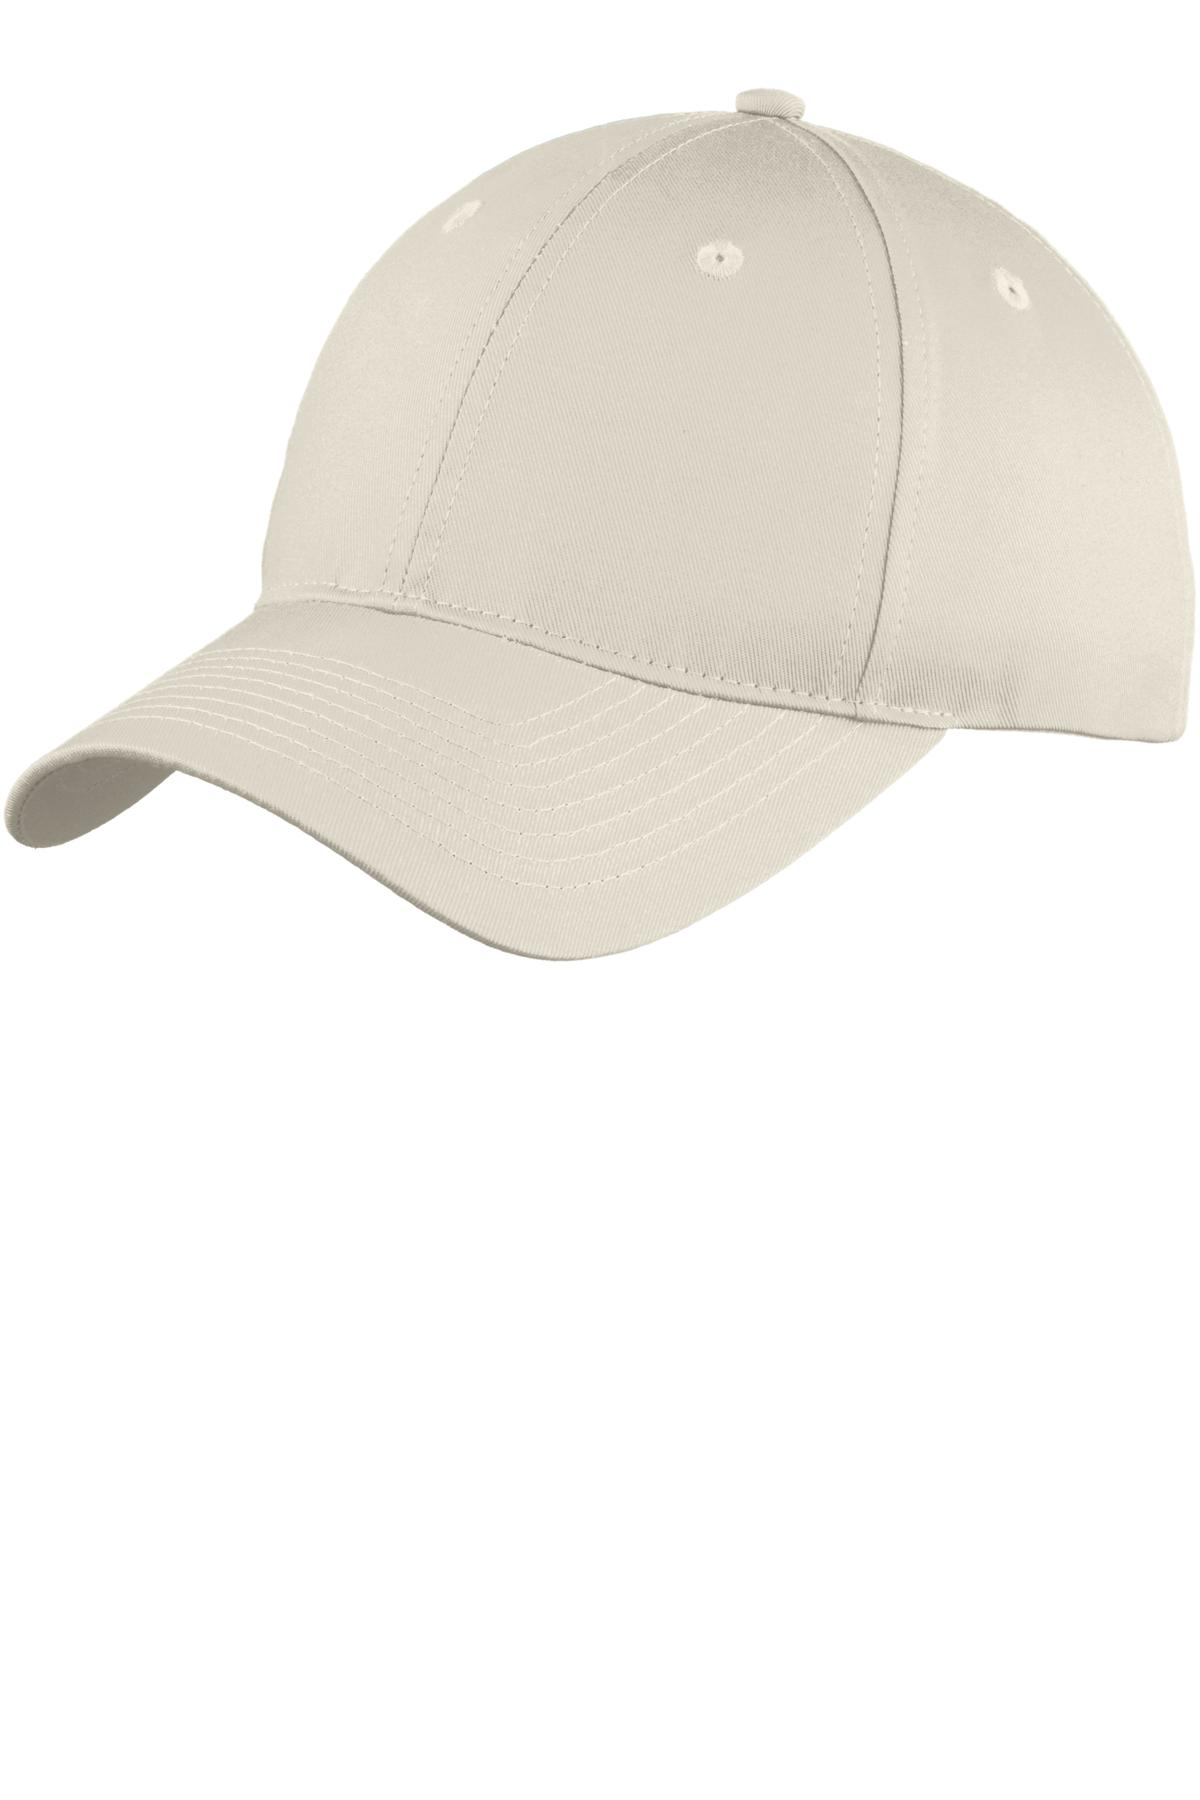 Port & Company ®  Six-Panel Unstructured Twill Cap. C914 - Oyster